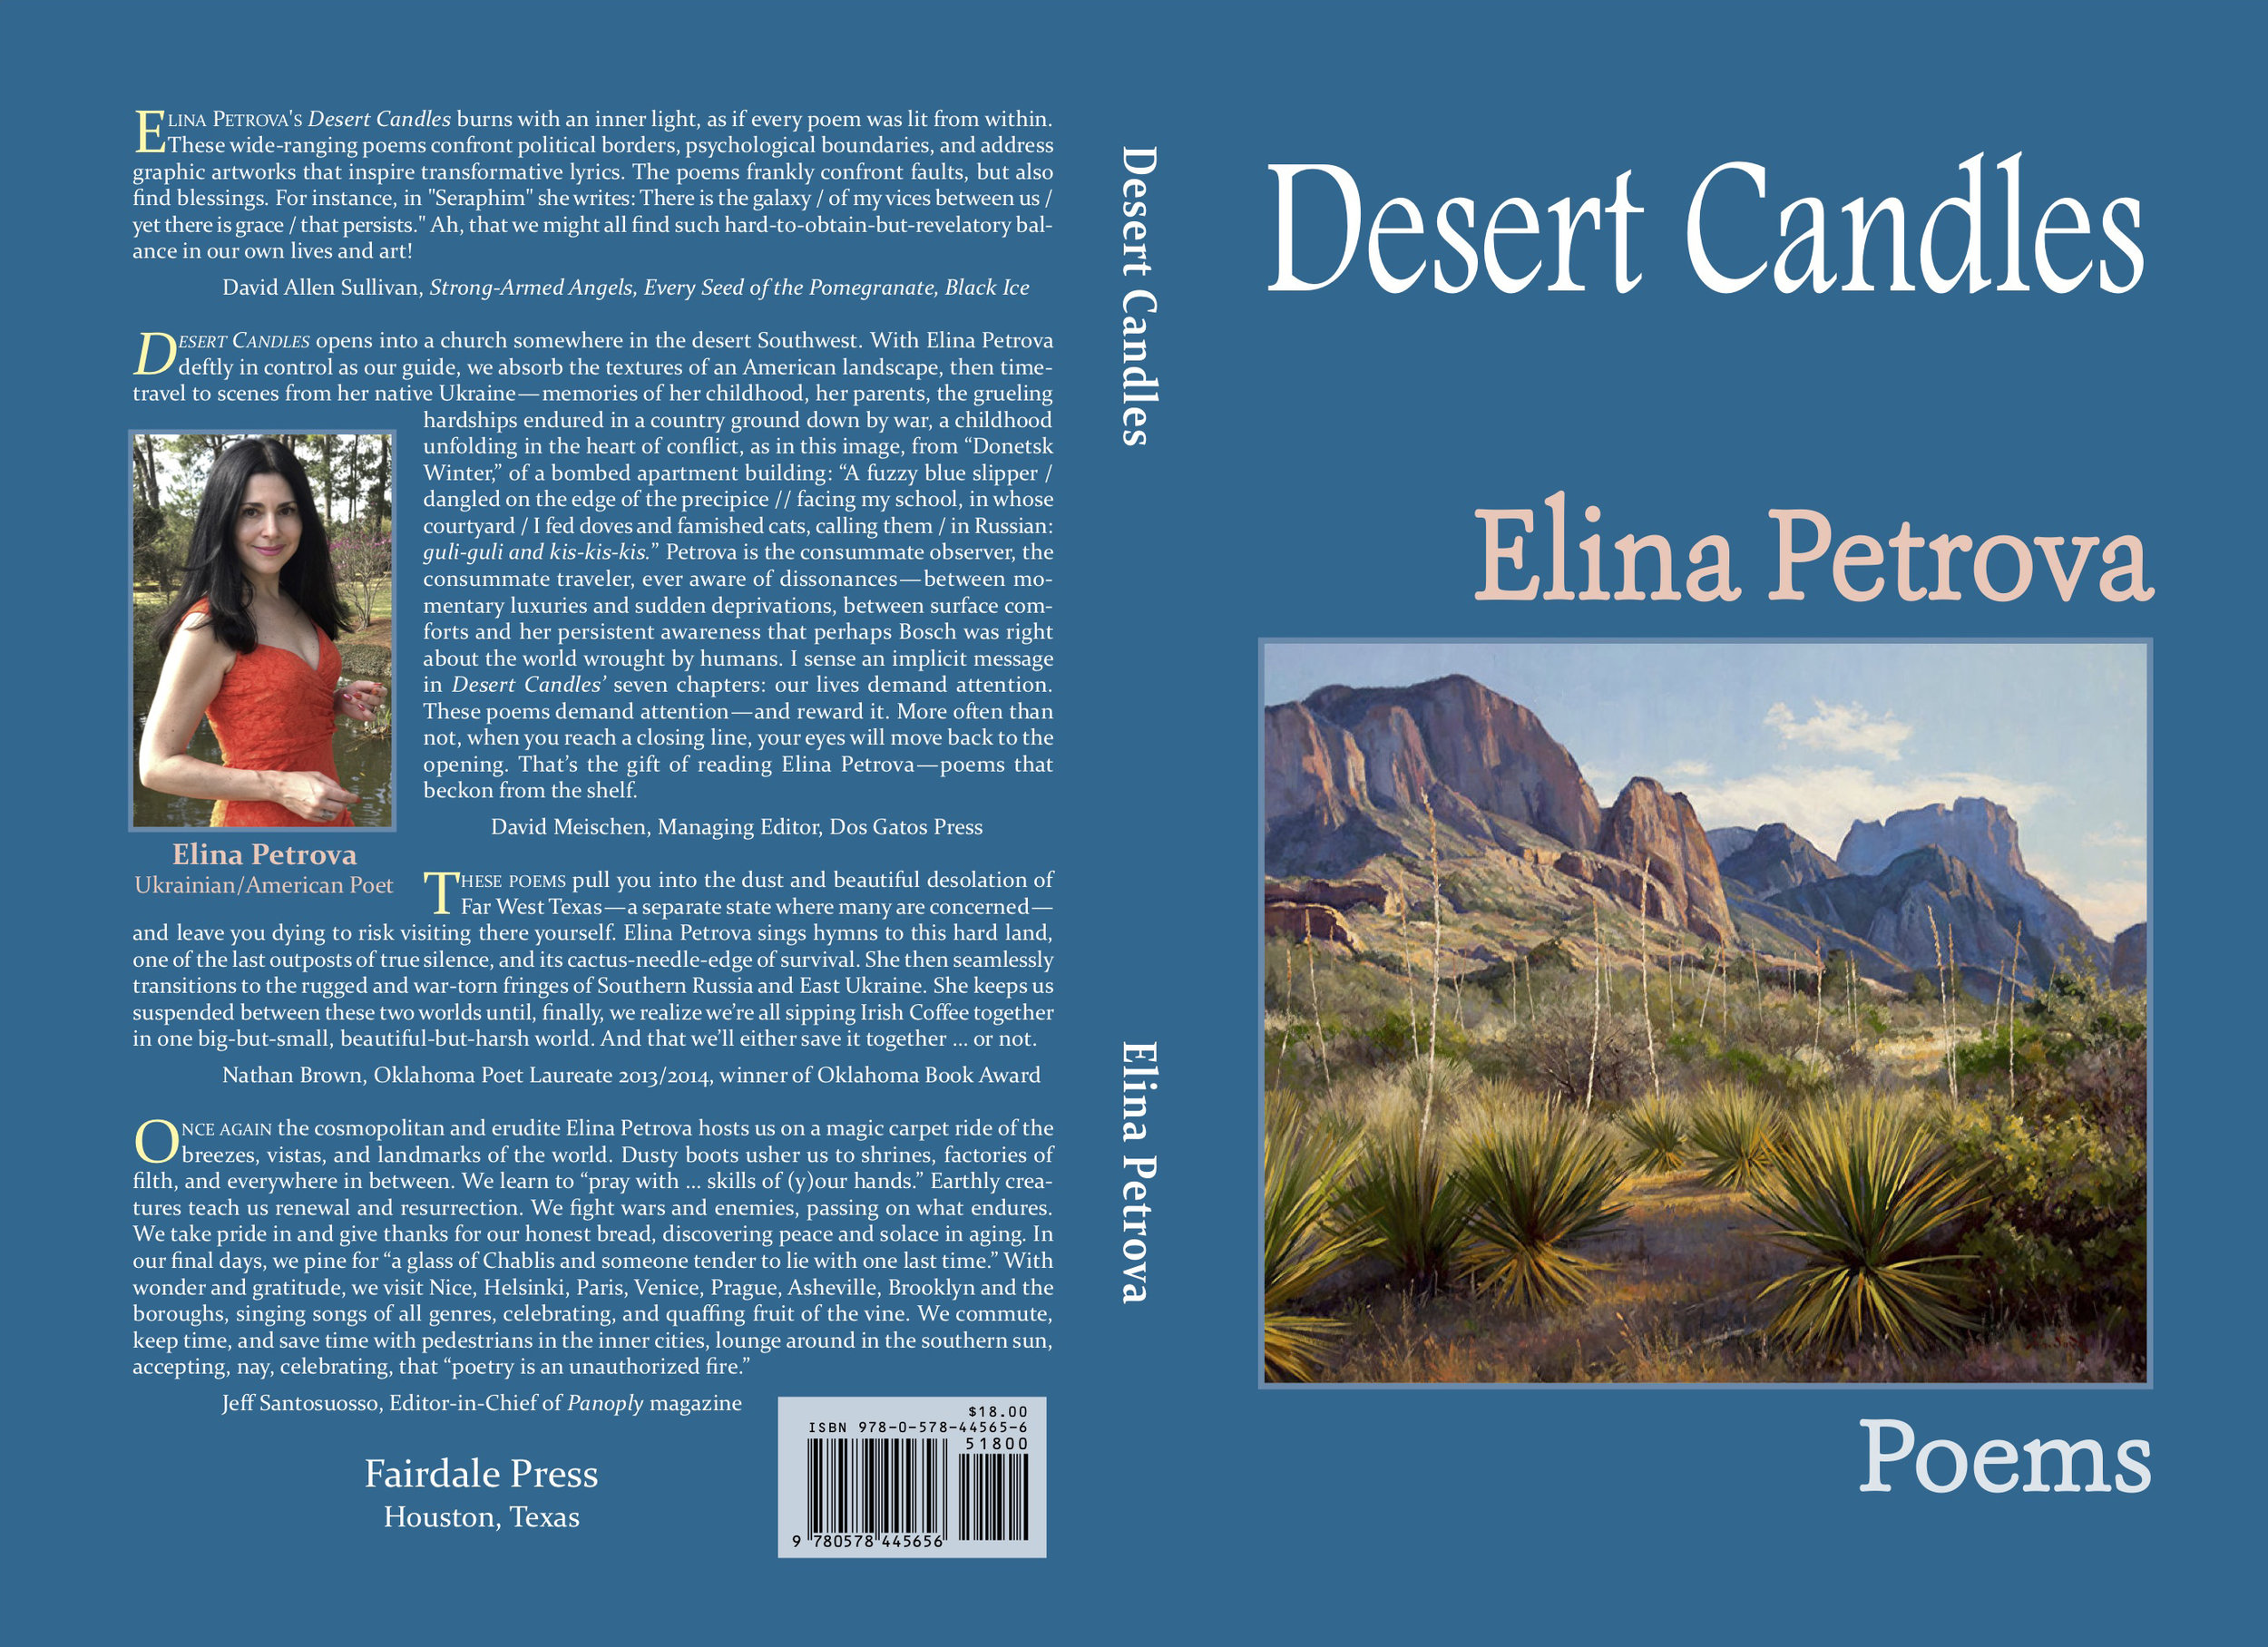 Book1. Desert Candles. Full Cover.jpg